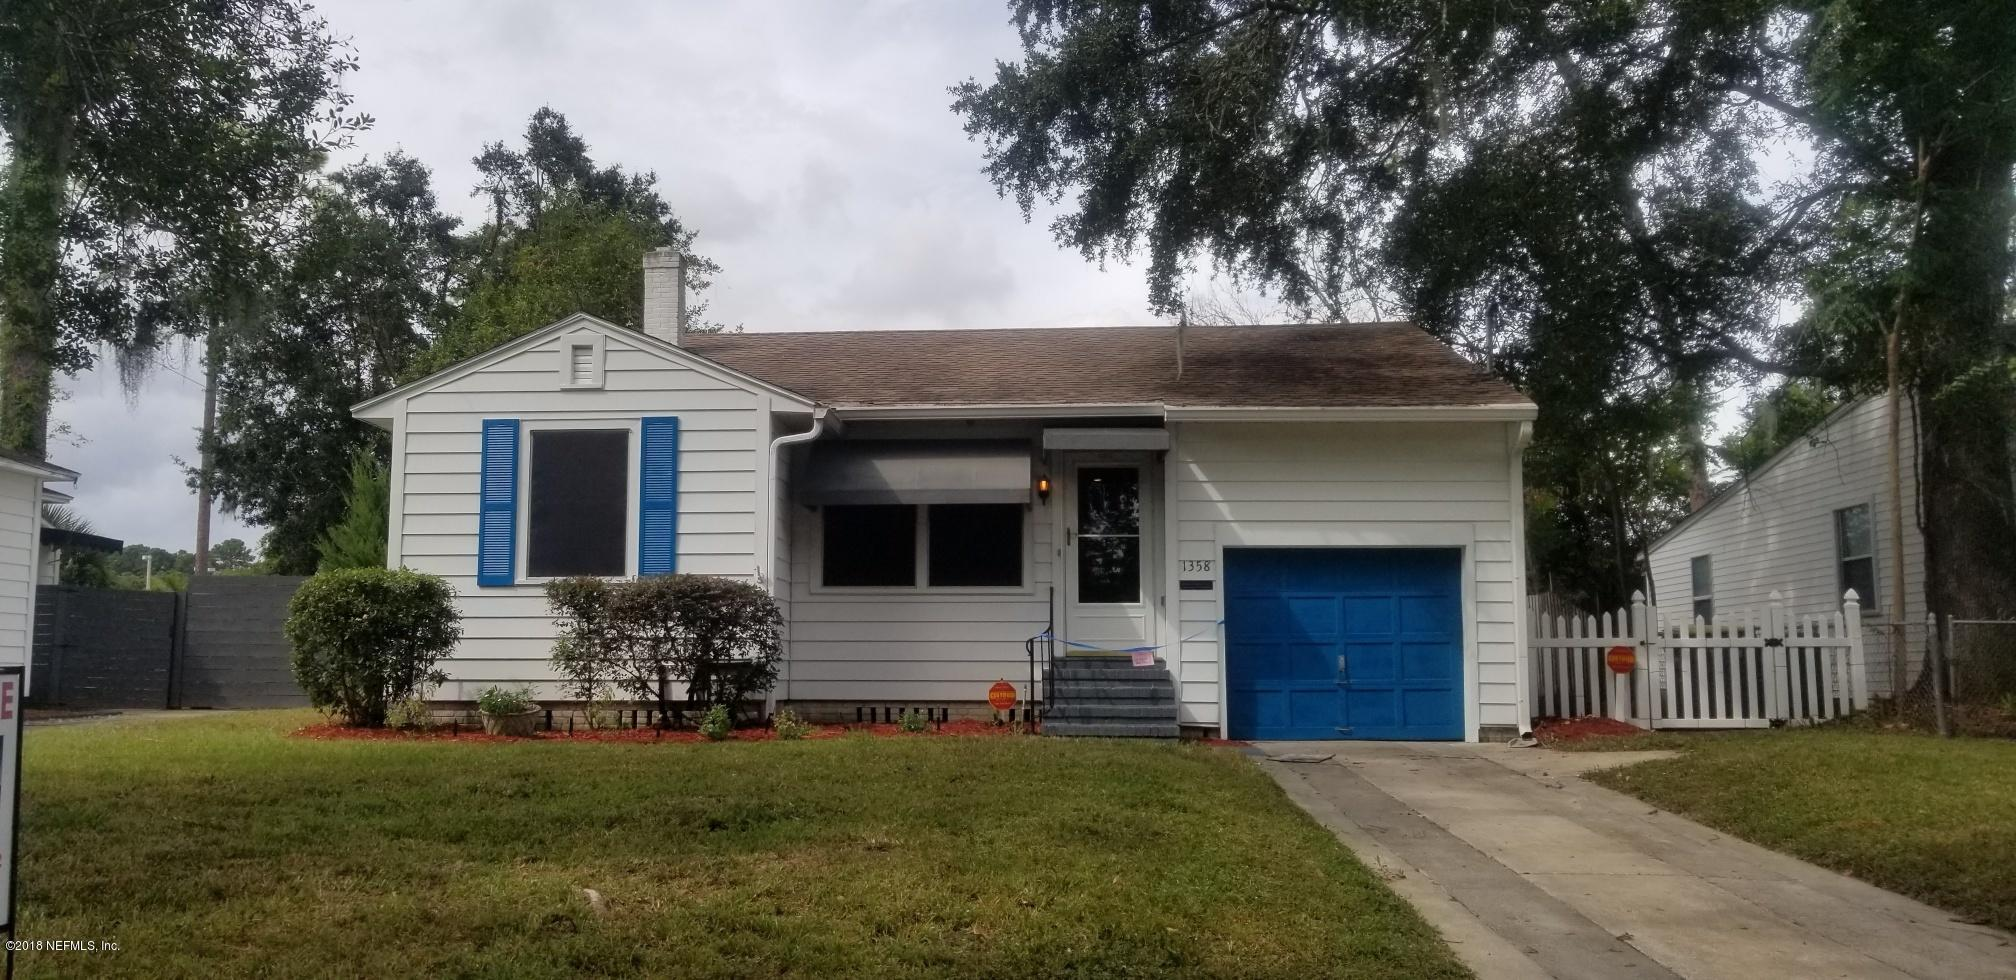 1358 MACARTHUR, JACKSONVILLE, FLORIDA 32205, 3 Bedrooms Bedrooms, ,2 BathroomsBathrooms,Residential - single family,For sale,MACARTHUR,960193